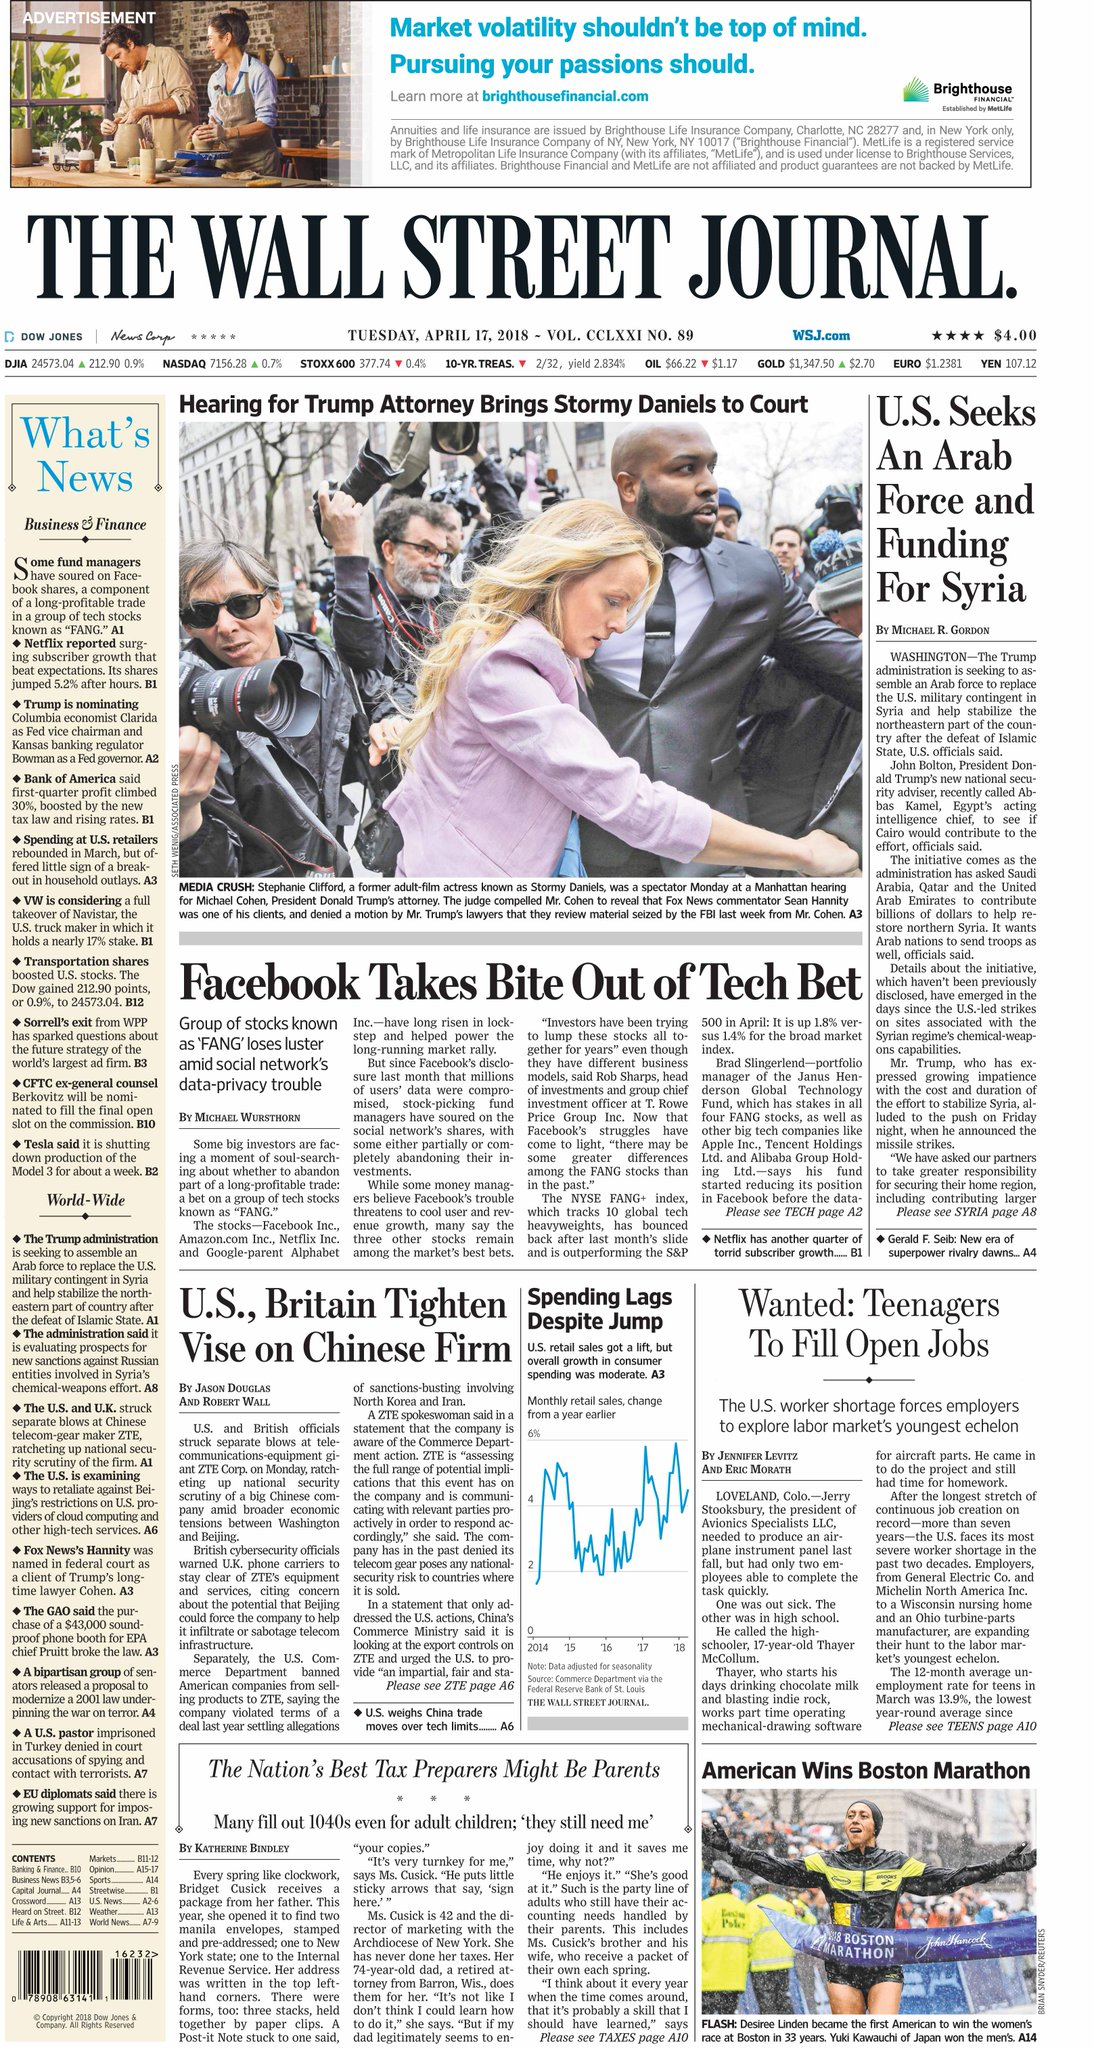 Take an early look at the front page of The Wall Street Journal https://t.co/5xQPDPcm8q https://t.co/kLKJAHms1s